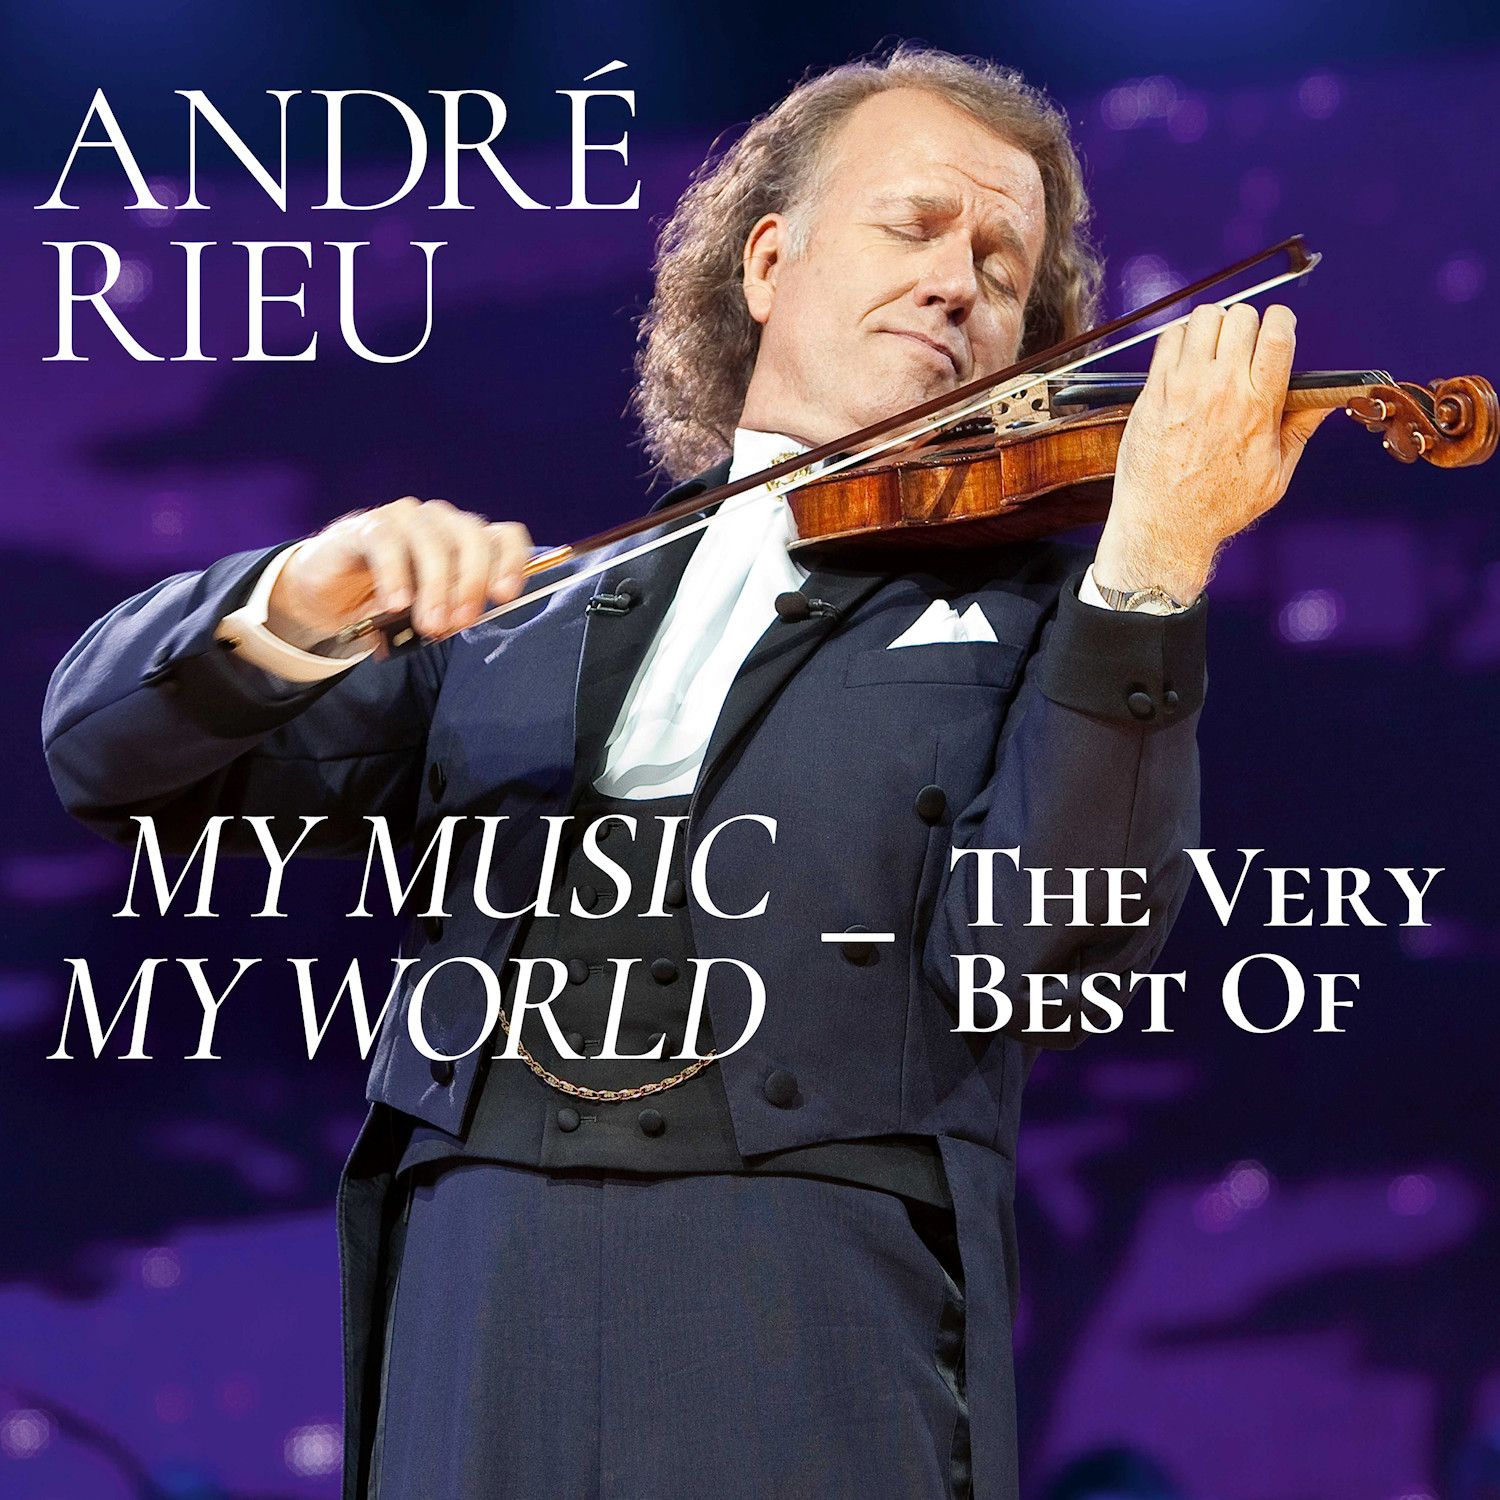 Andre Rieu My Music My World 2cd In 2020 My Music Music